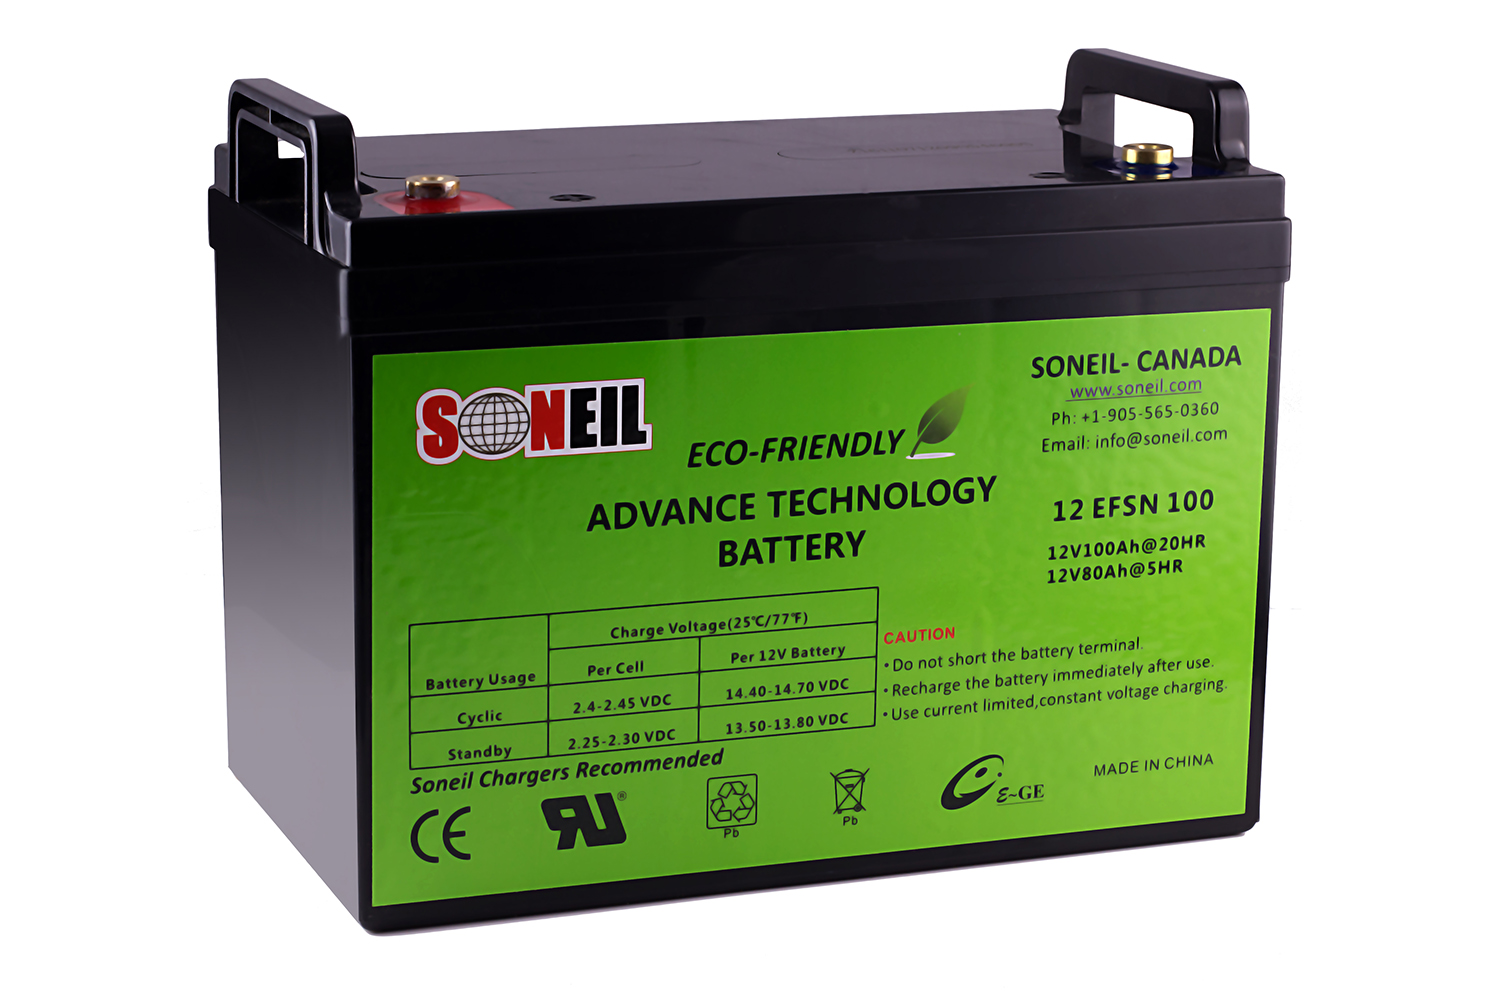 12V 100AH Advance Technology Battery